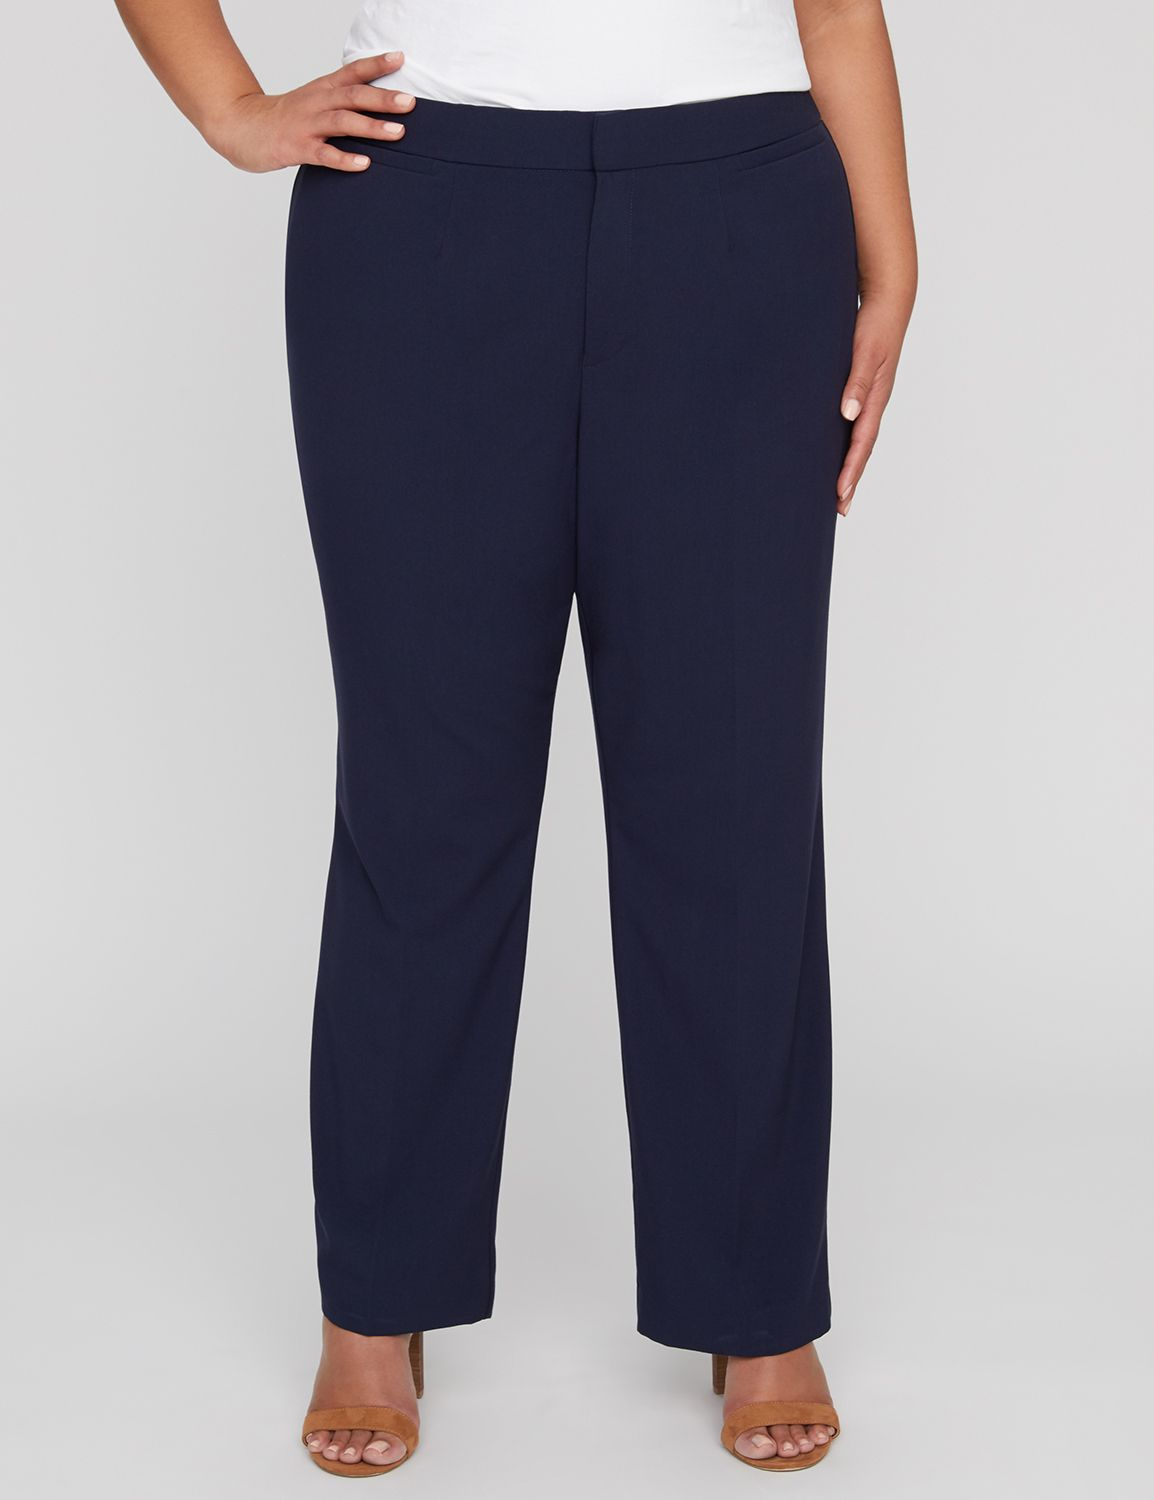 Right Fit Pant (Curvy) Right Fit Pant (Curvy) MP-300043642